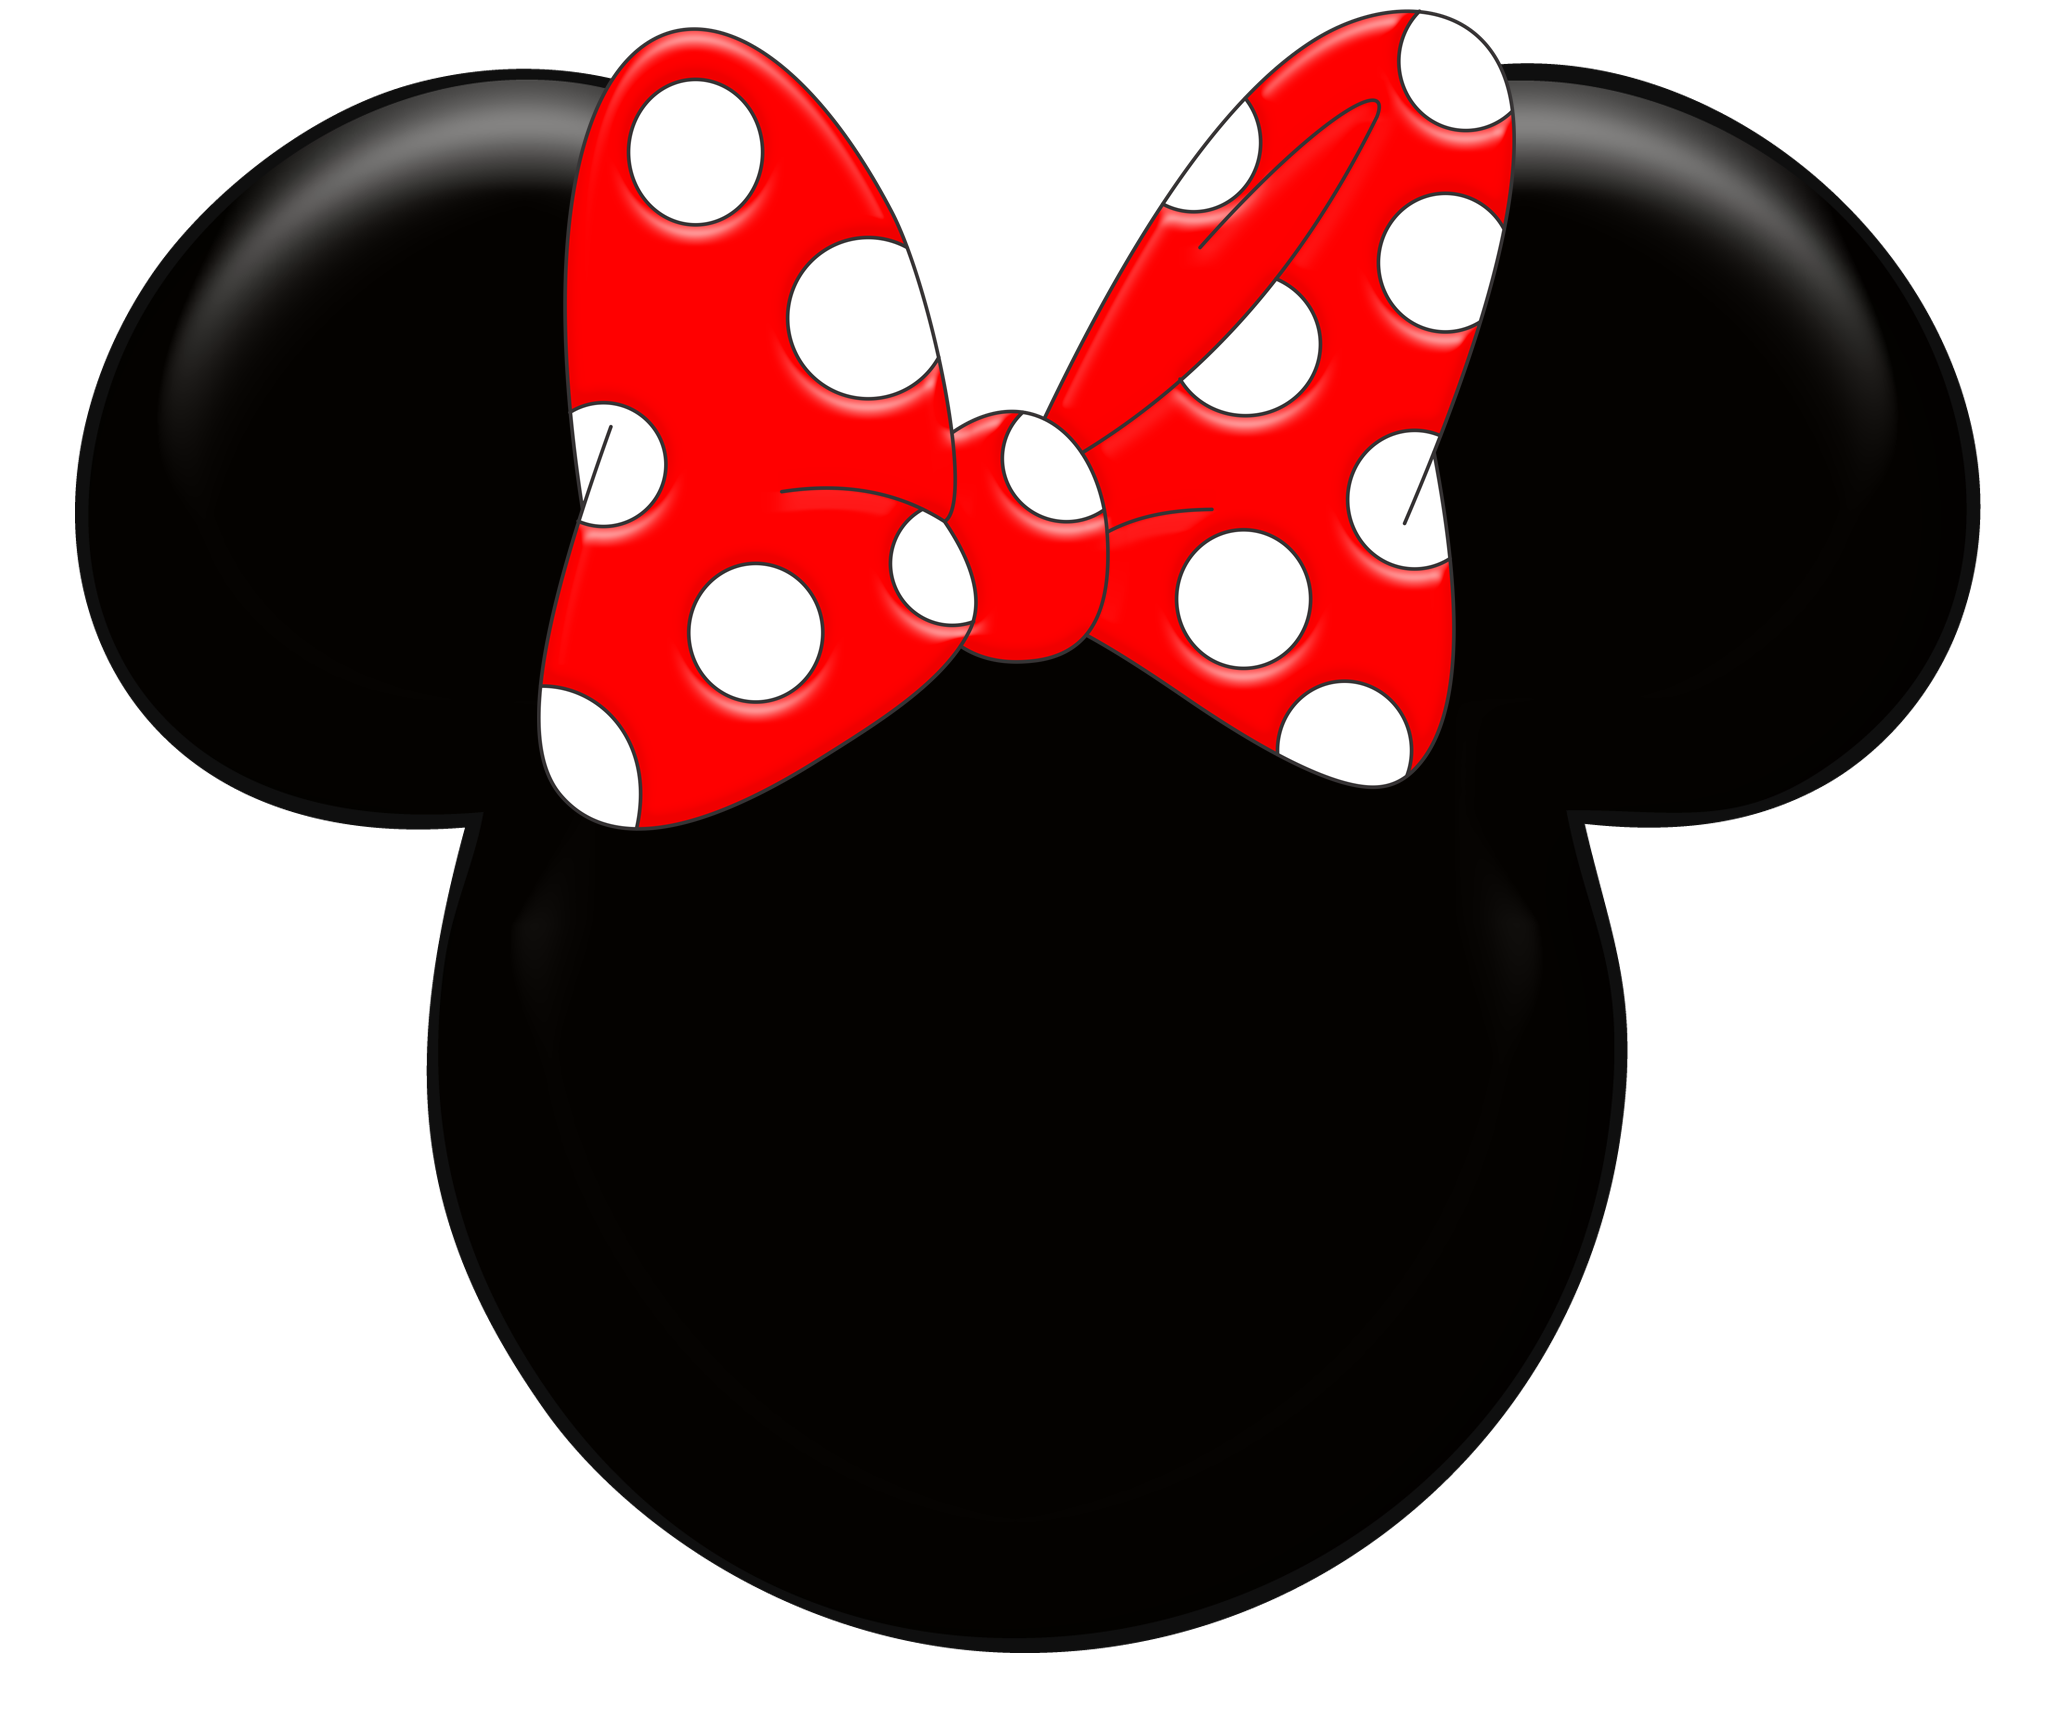 clip royalty free Red minnie mouse wallpaper. Lifestyle clipart luxurious lifestyle.